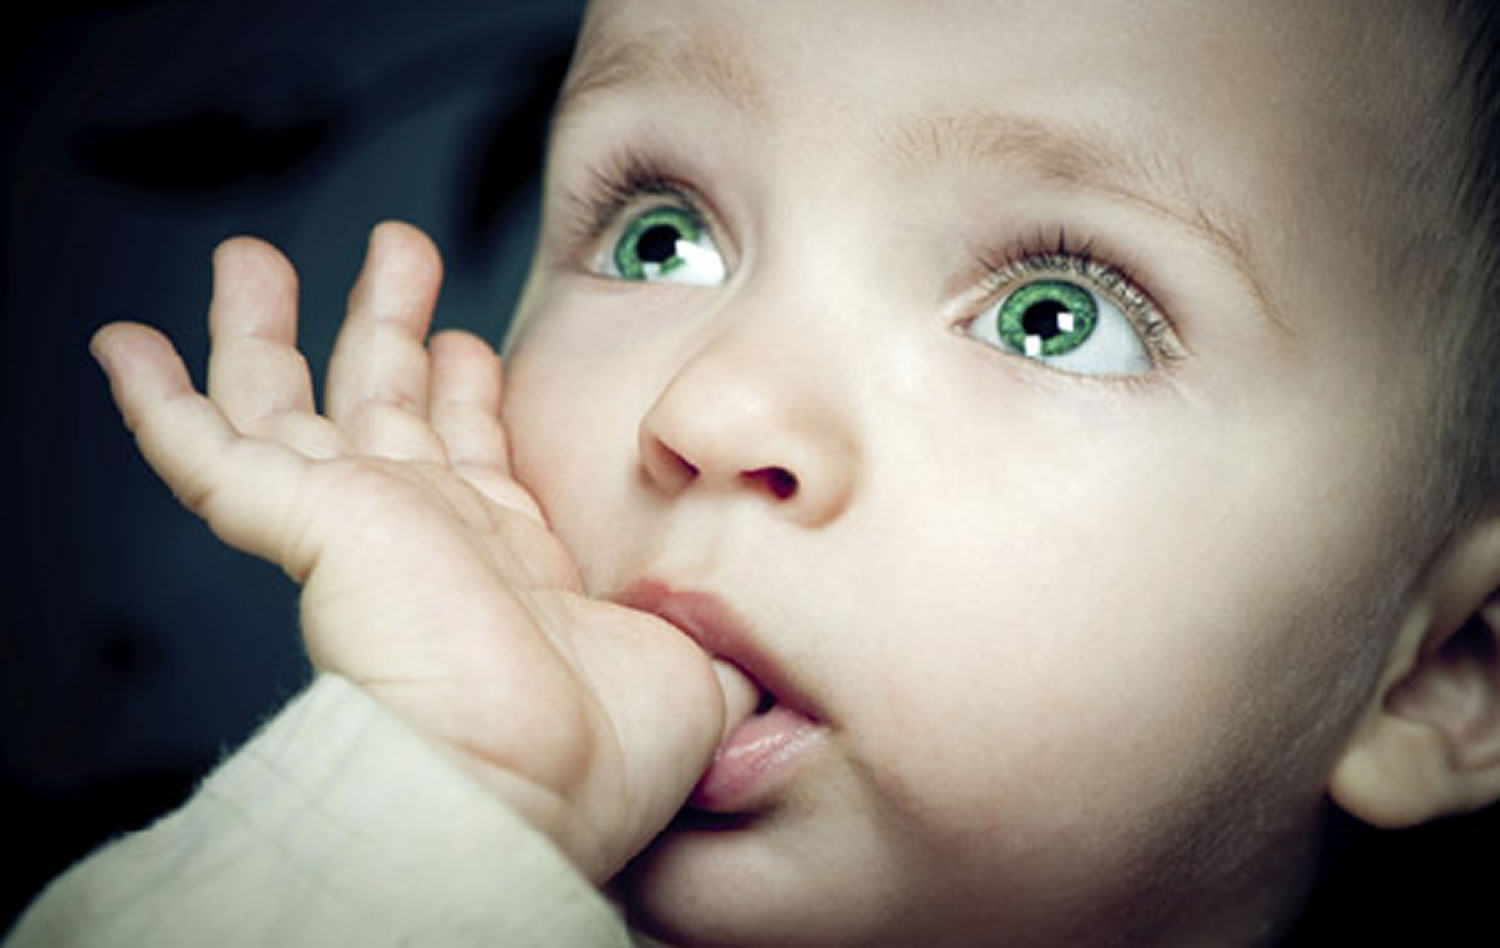 Thumb sucking in infants reasons ways to stop it